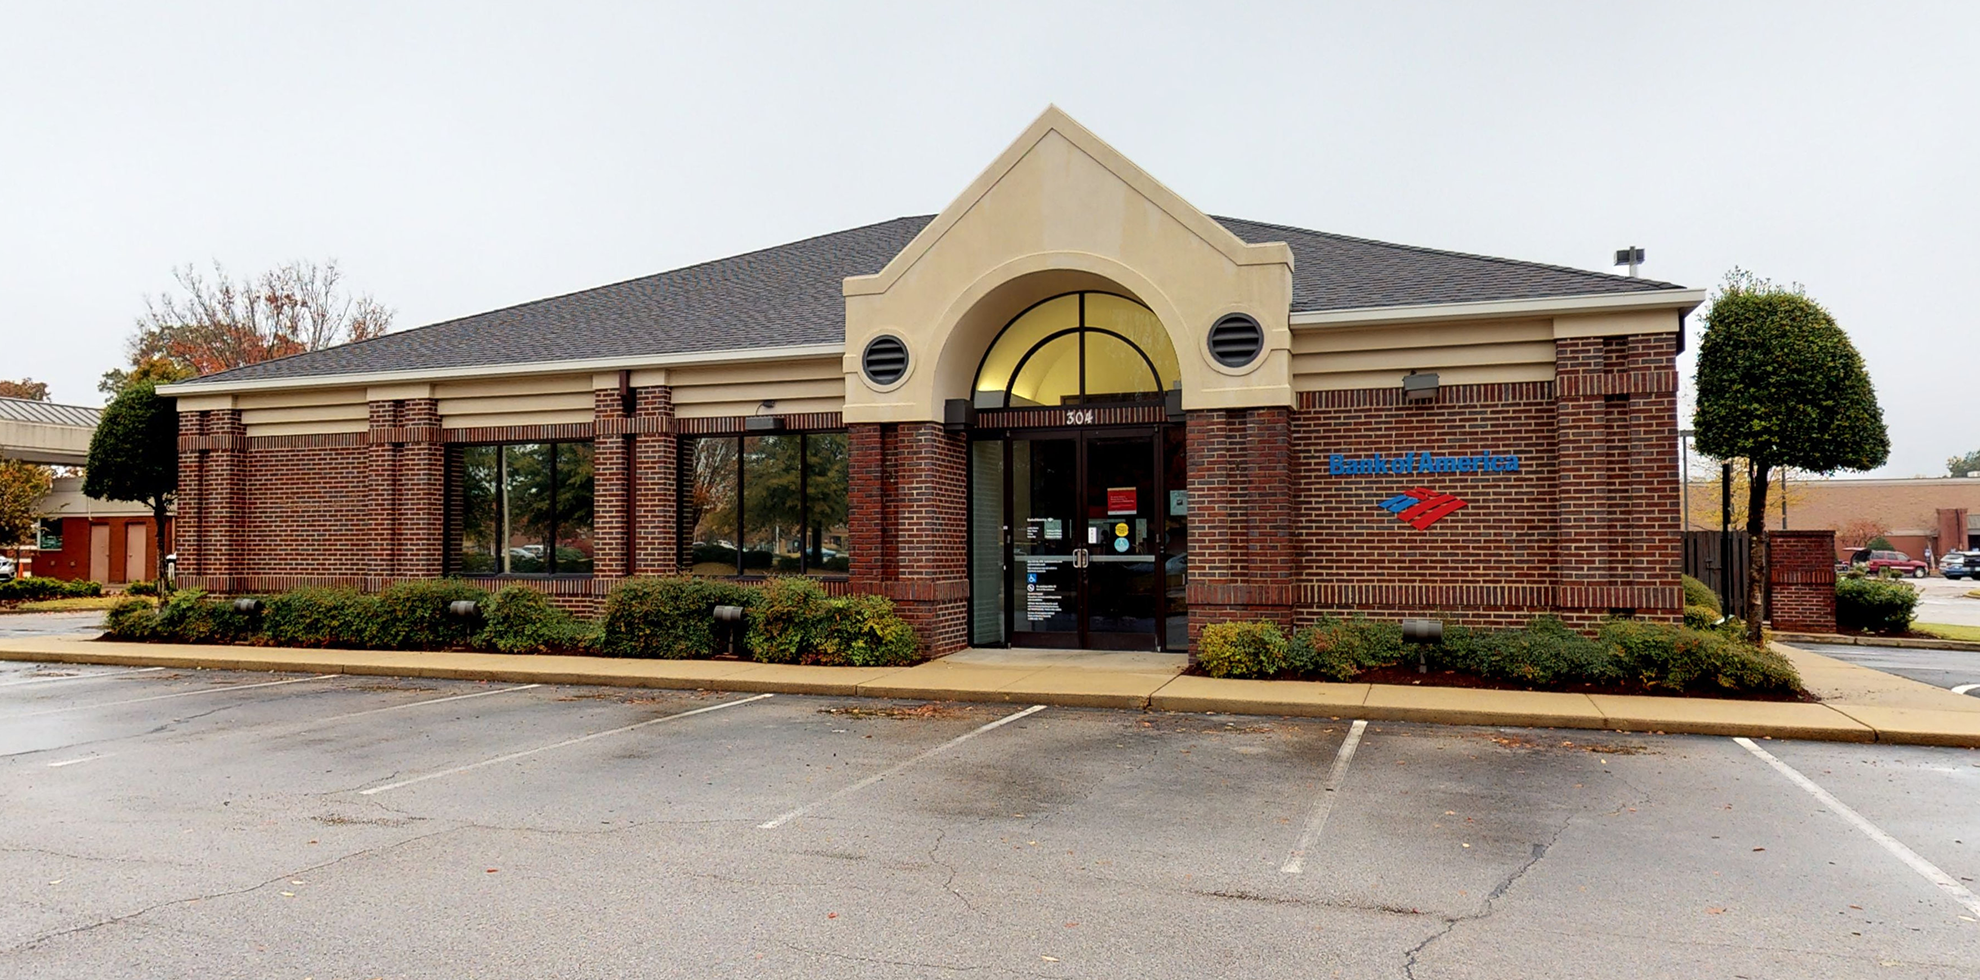 Bank of America financial center with drive-thru ATM   304 New Byhalia Rd, Collierville, TN 38017